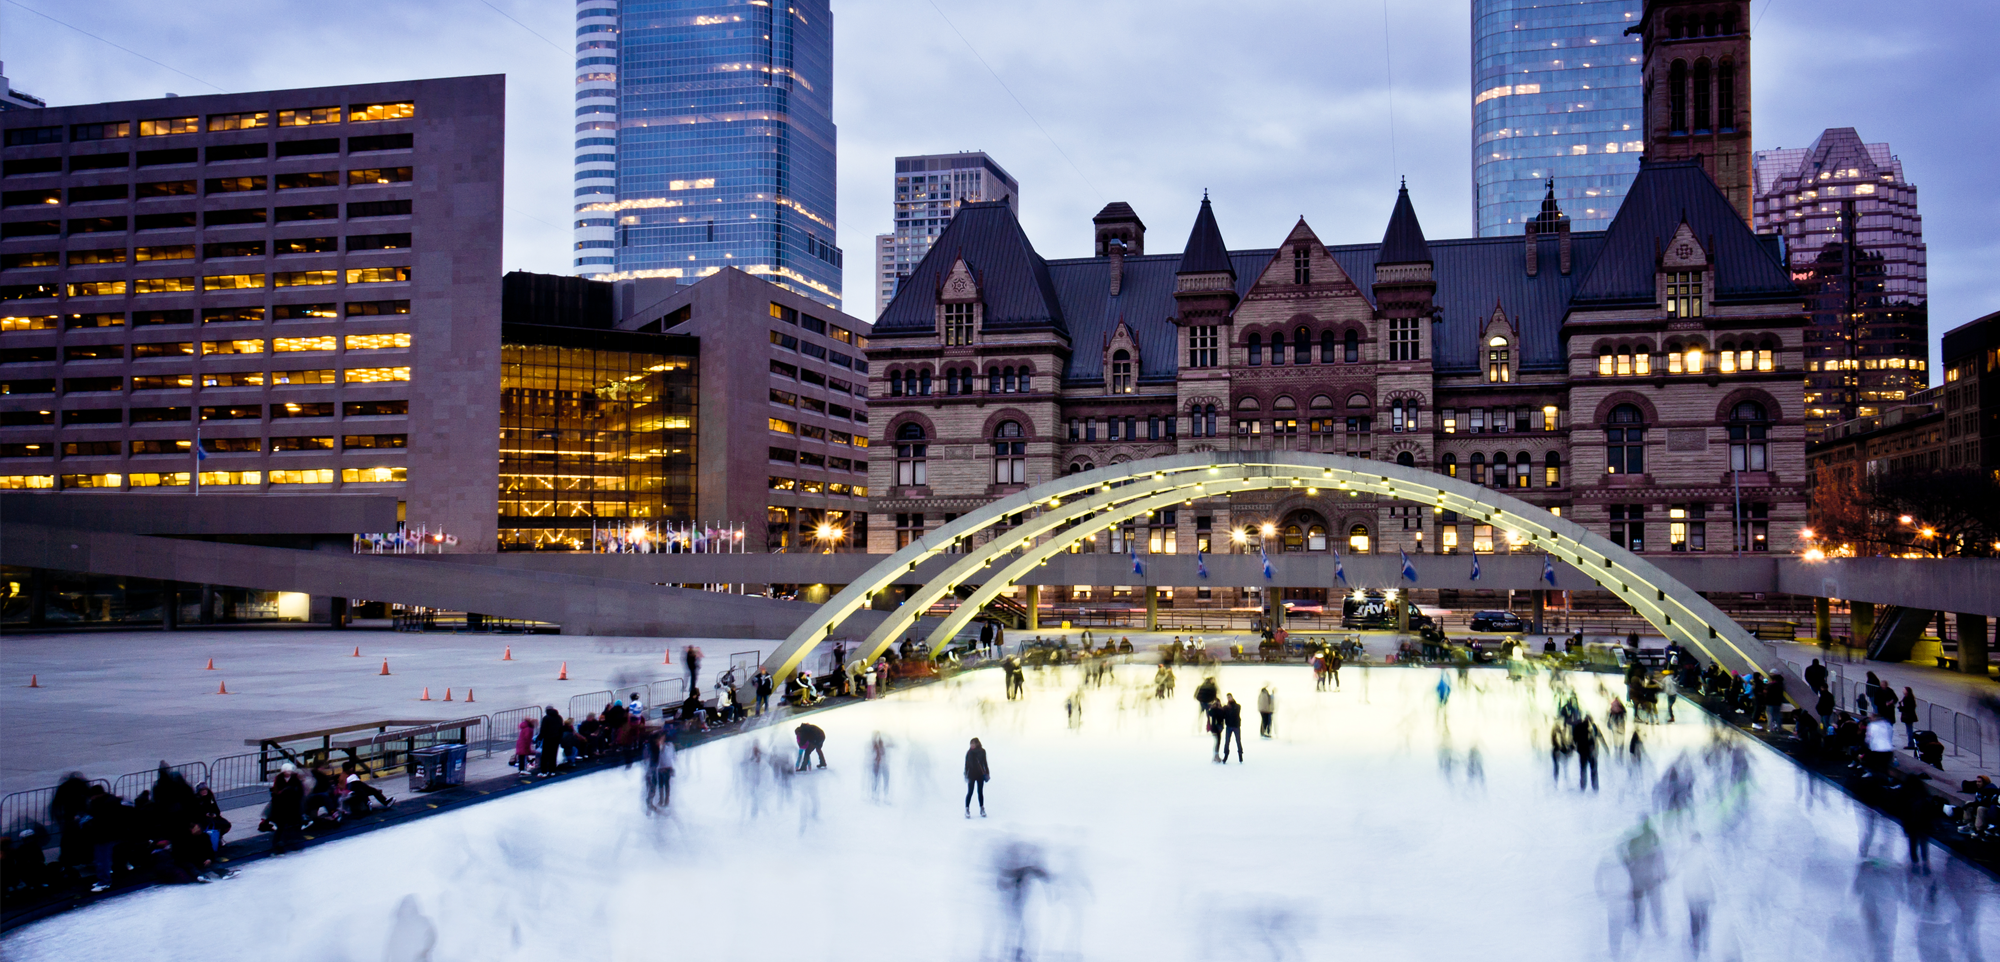 15 Free Or Really Cheap Kids Activities In Toronto This Winter